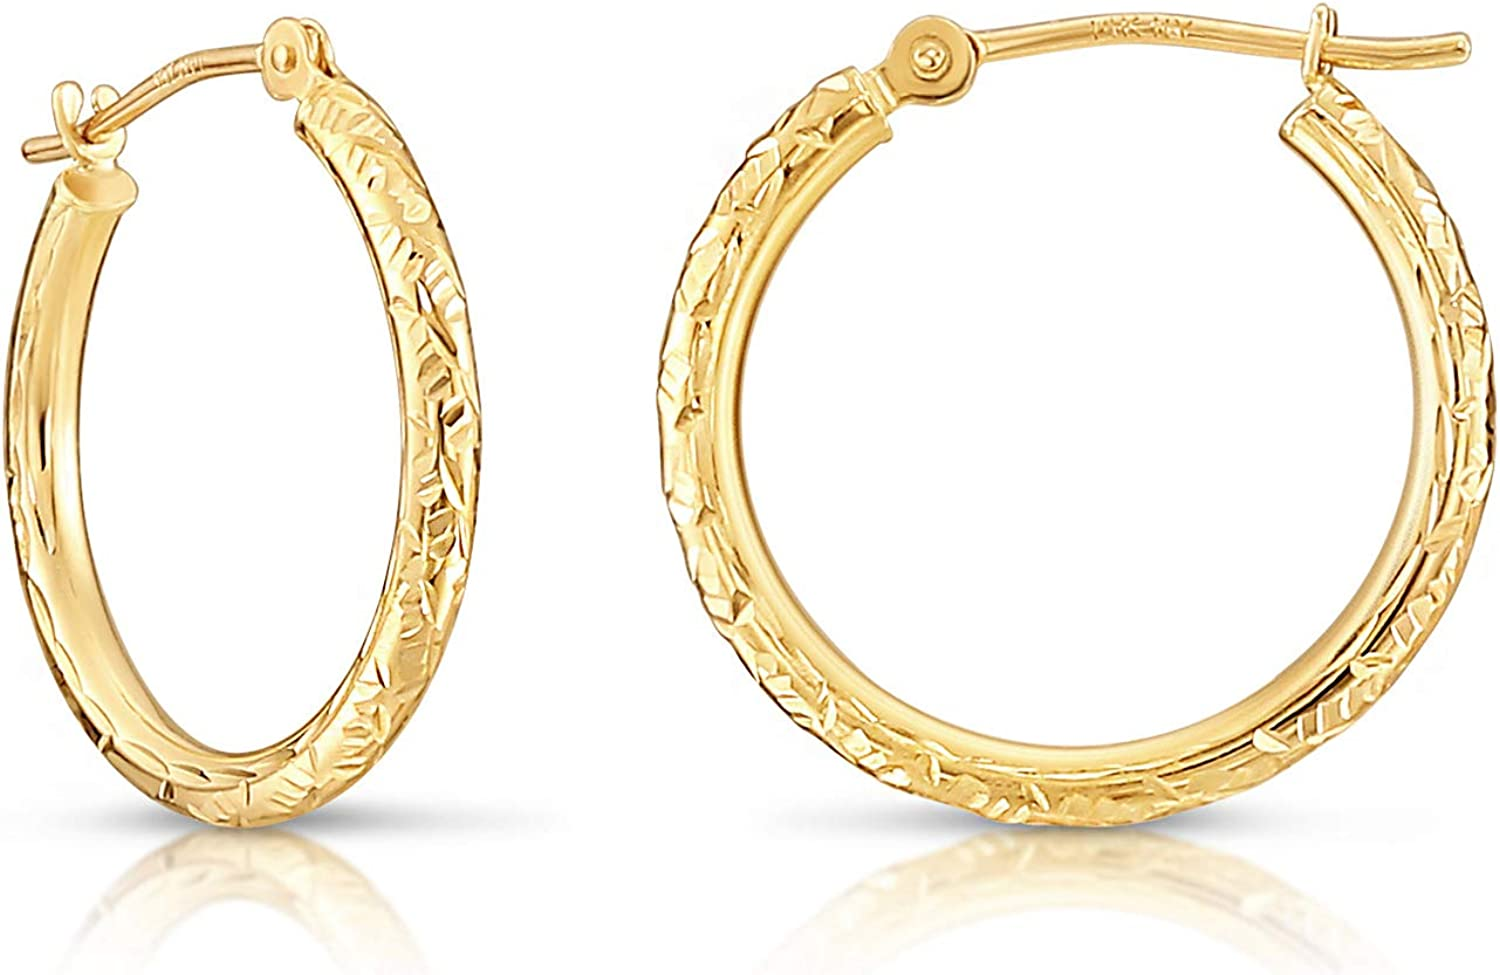 14k Yellow Gold Hand 67% Credence OFF of fixed price Engraved Hoop Diamond-cut Earrings Round